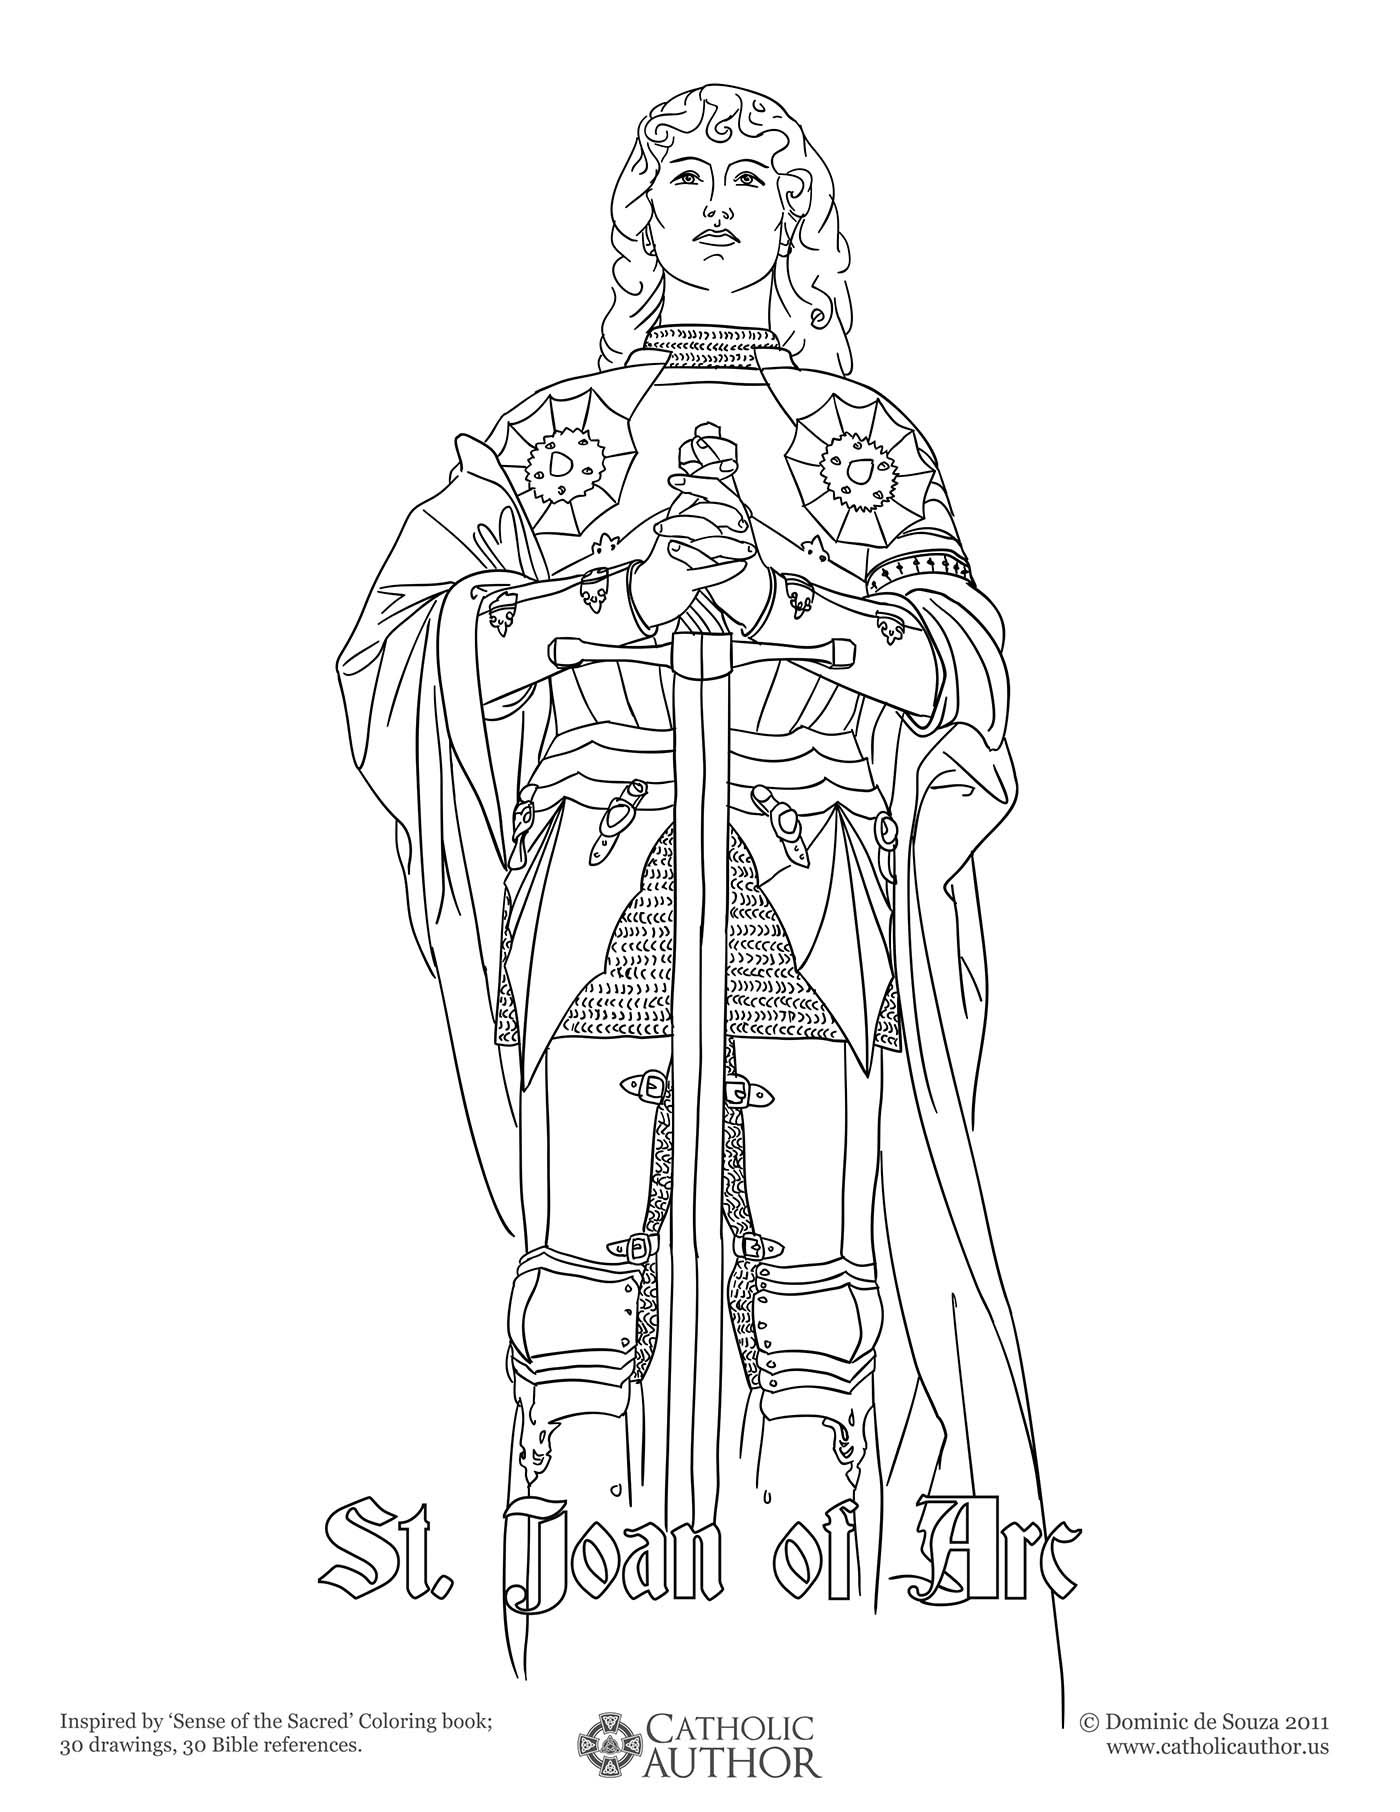 St Joan of Arc - 12 Free Hand-Drawn Catholic Coloring Pictures ...